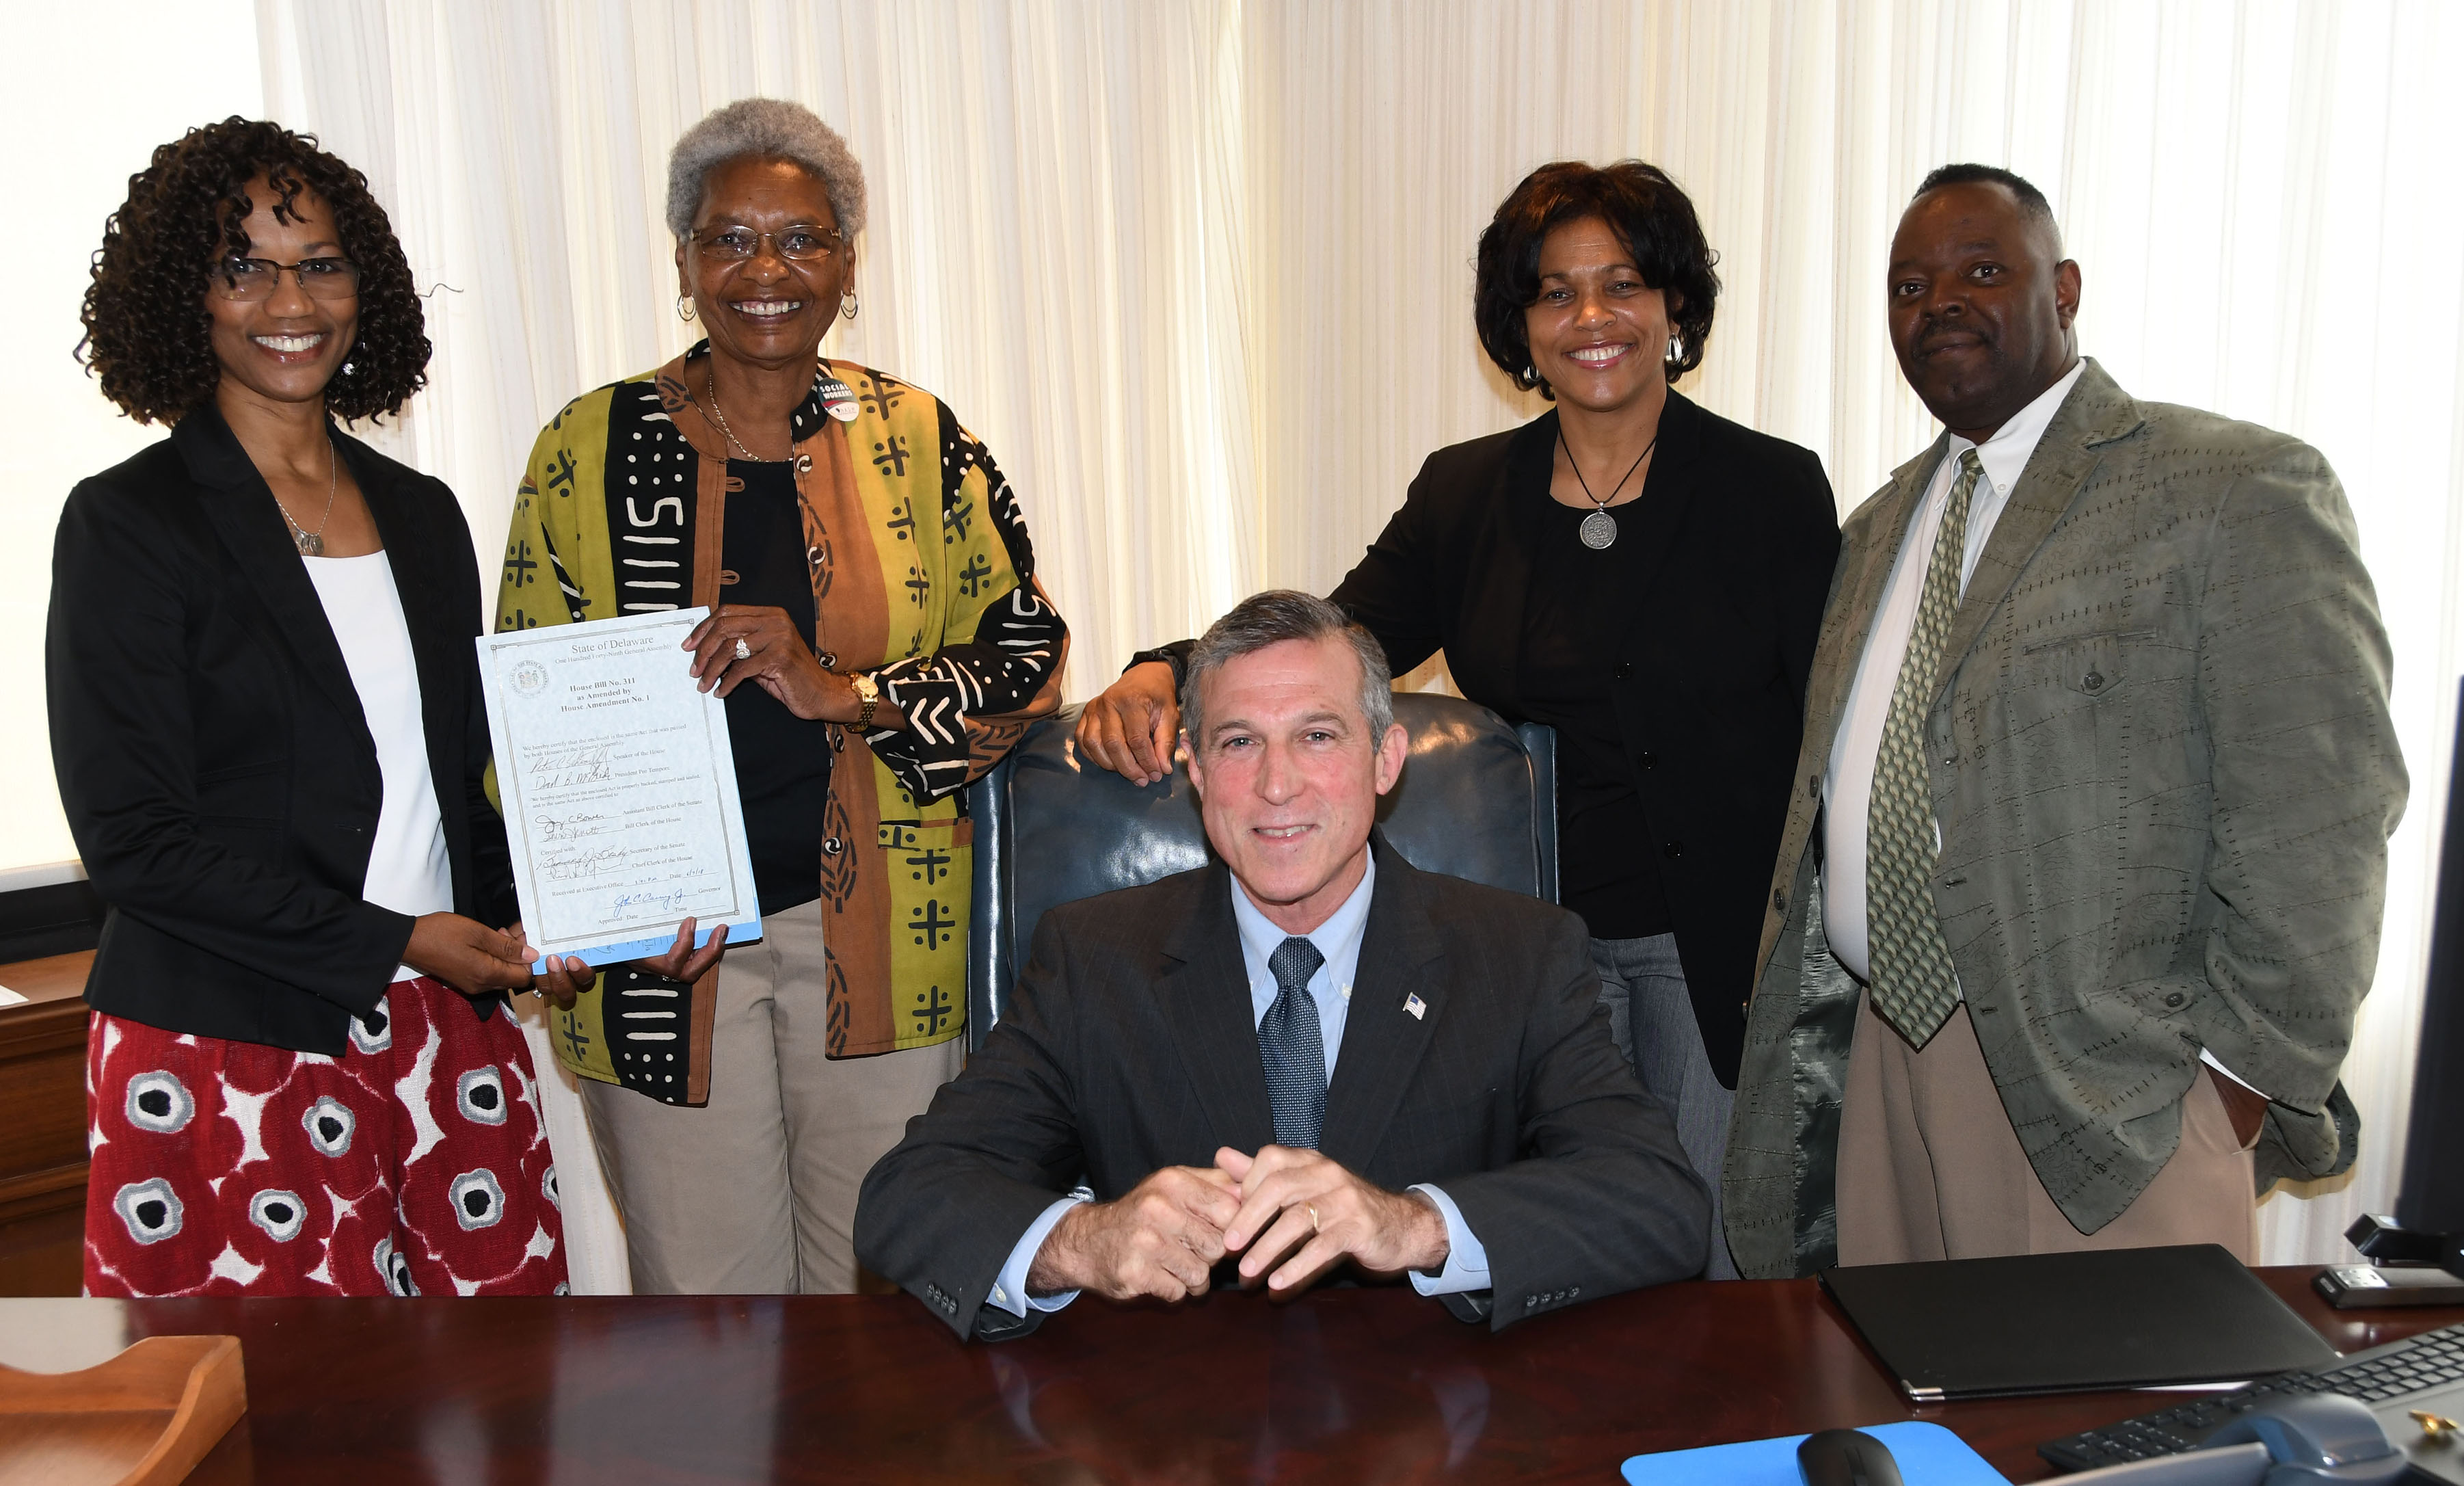 Gov. John Carney poses with the NASW-DE subcommittee -- all DSU folks -- who were instrumental in the passage of HB 311. Standing from l-r: Dr. Sheridan Kingsberry and Dr. Marlene Saunders holding the signed legislation, along with Dr. Fran Franklin and Philip Thompson.